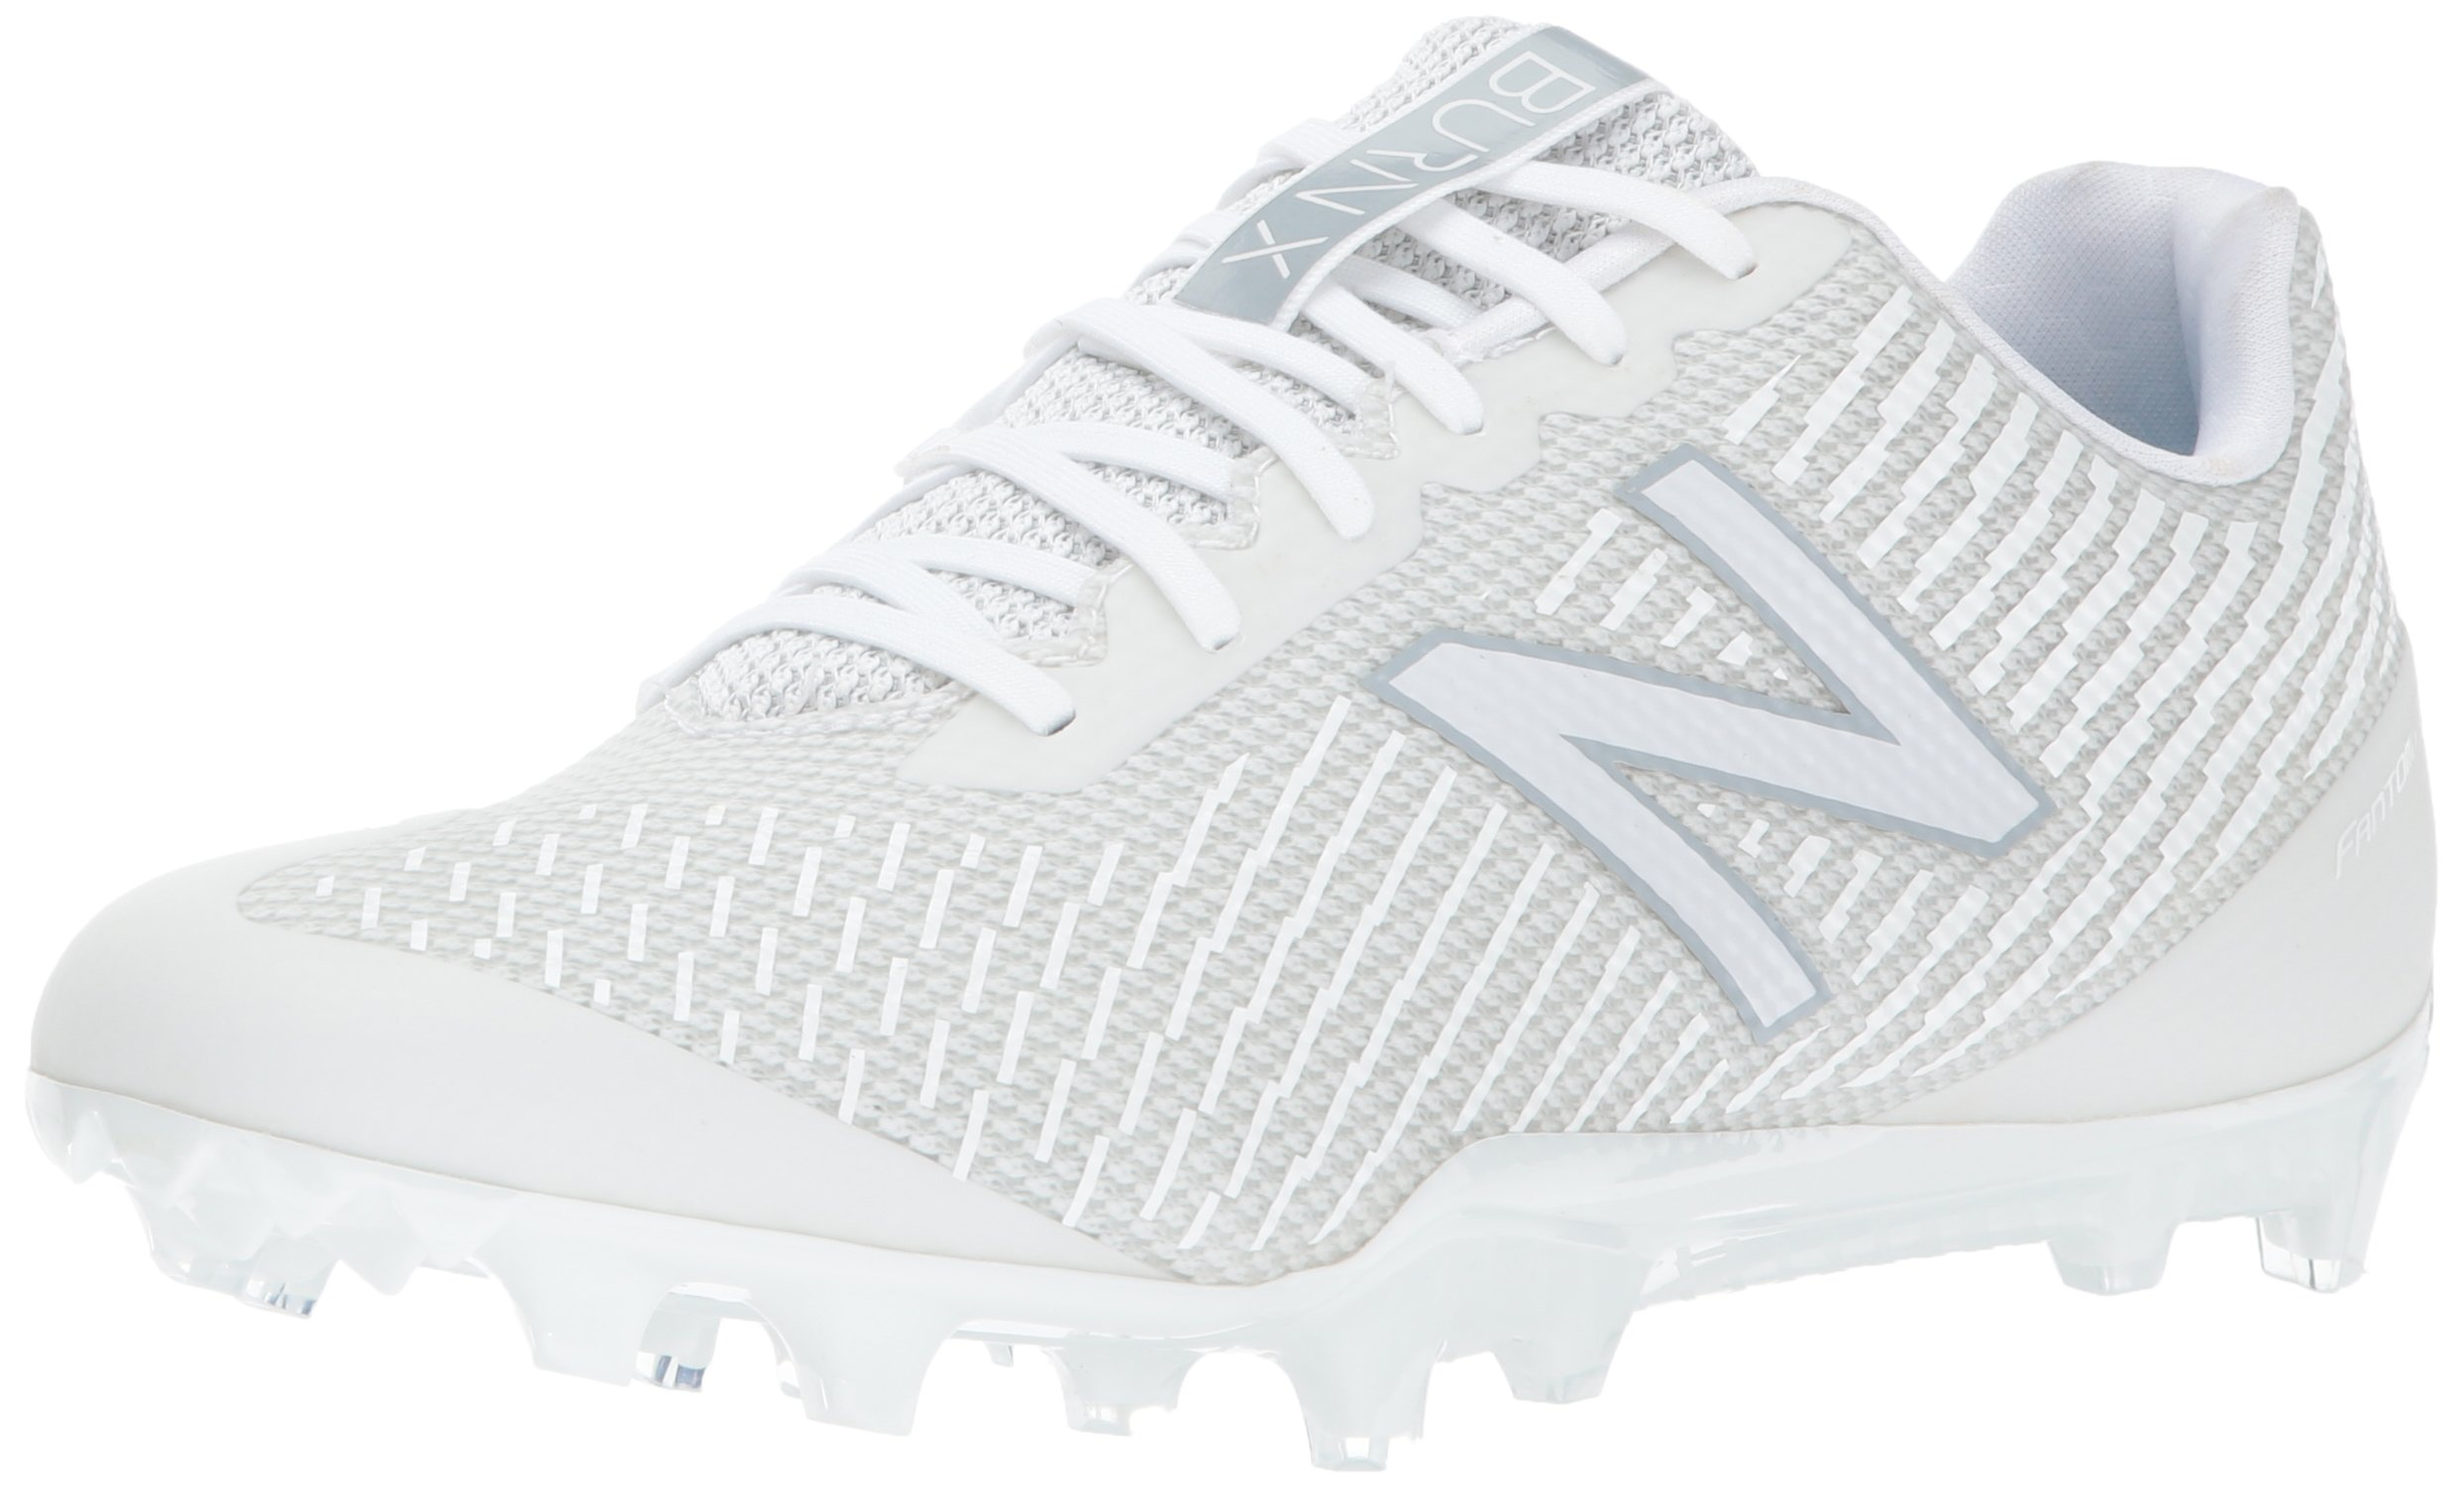 New Balance Men's Burn Low Speed Lacrosse Shoe, White, 11 D US by New Balance